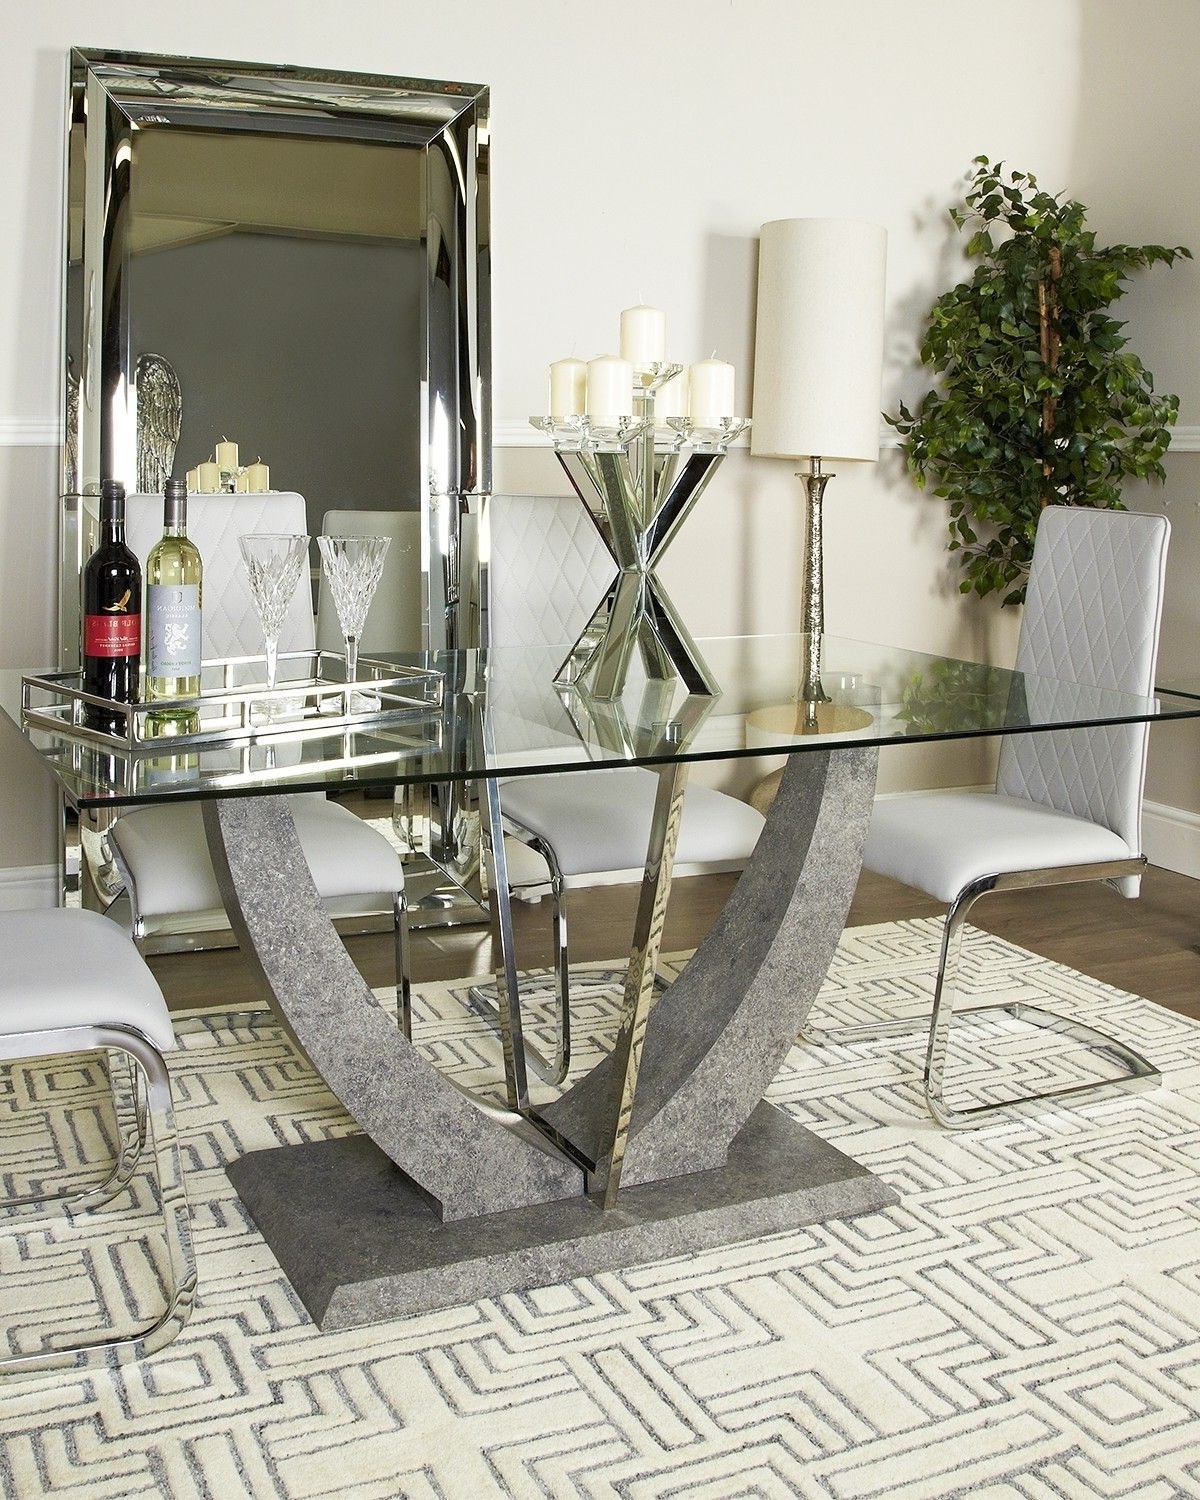 Leo Grey Glass Top Chrome Dining Table And Chairs Set With Regard To Well Known Chrome Dining Tables And Chairs (View 16 of 25)